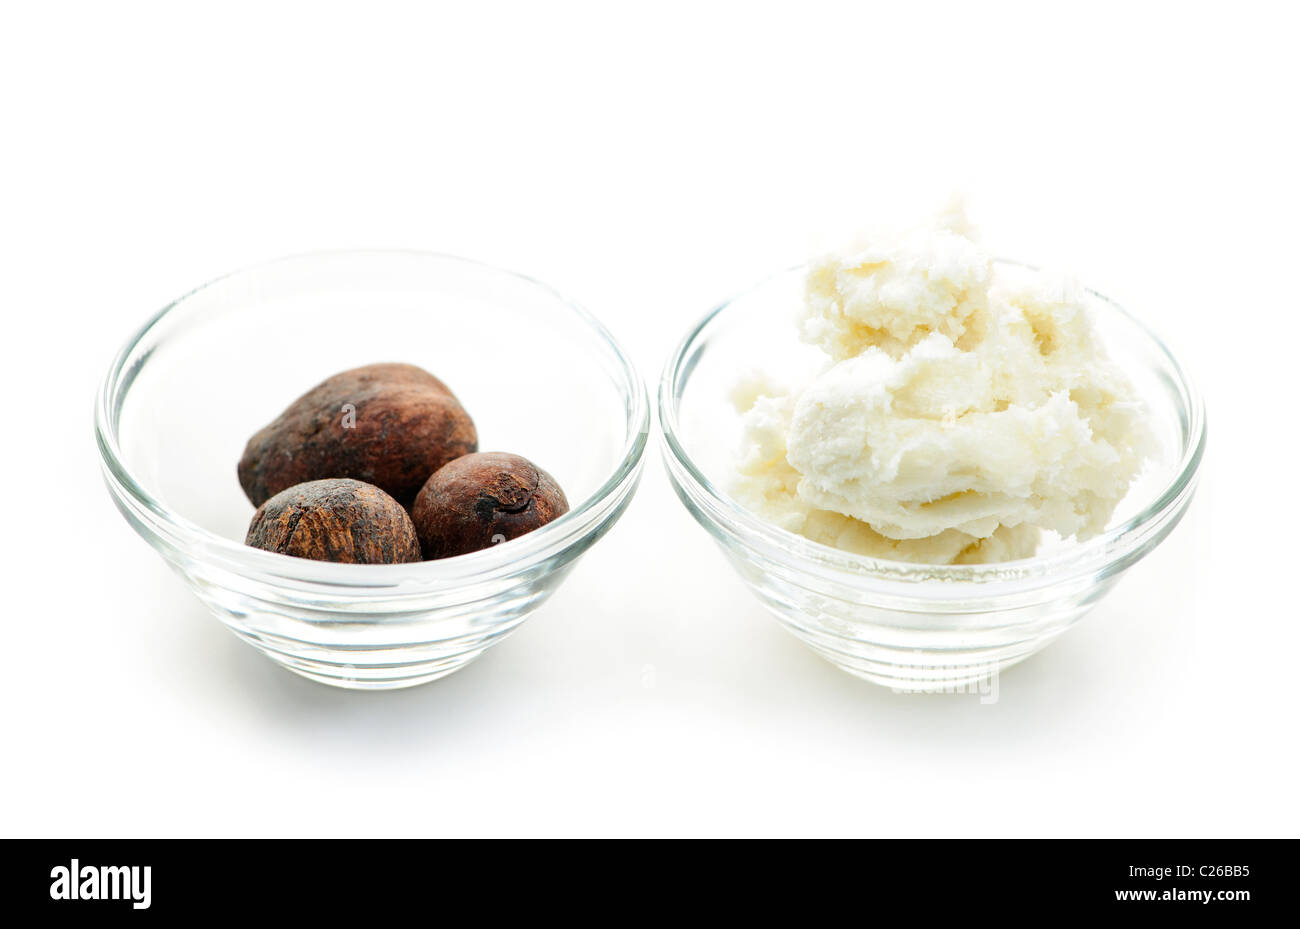 Shea butter and nuts in glass bowls isolated on white Stock Photo